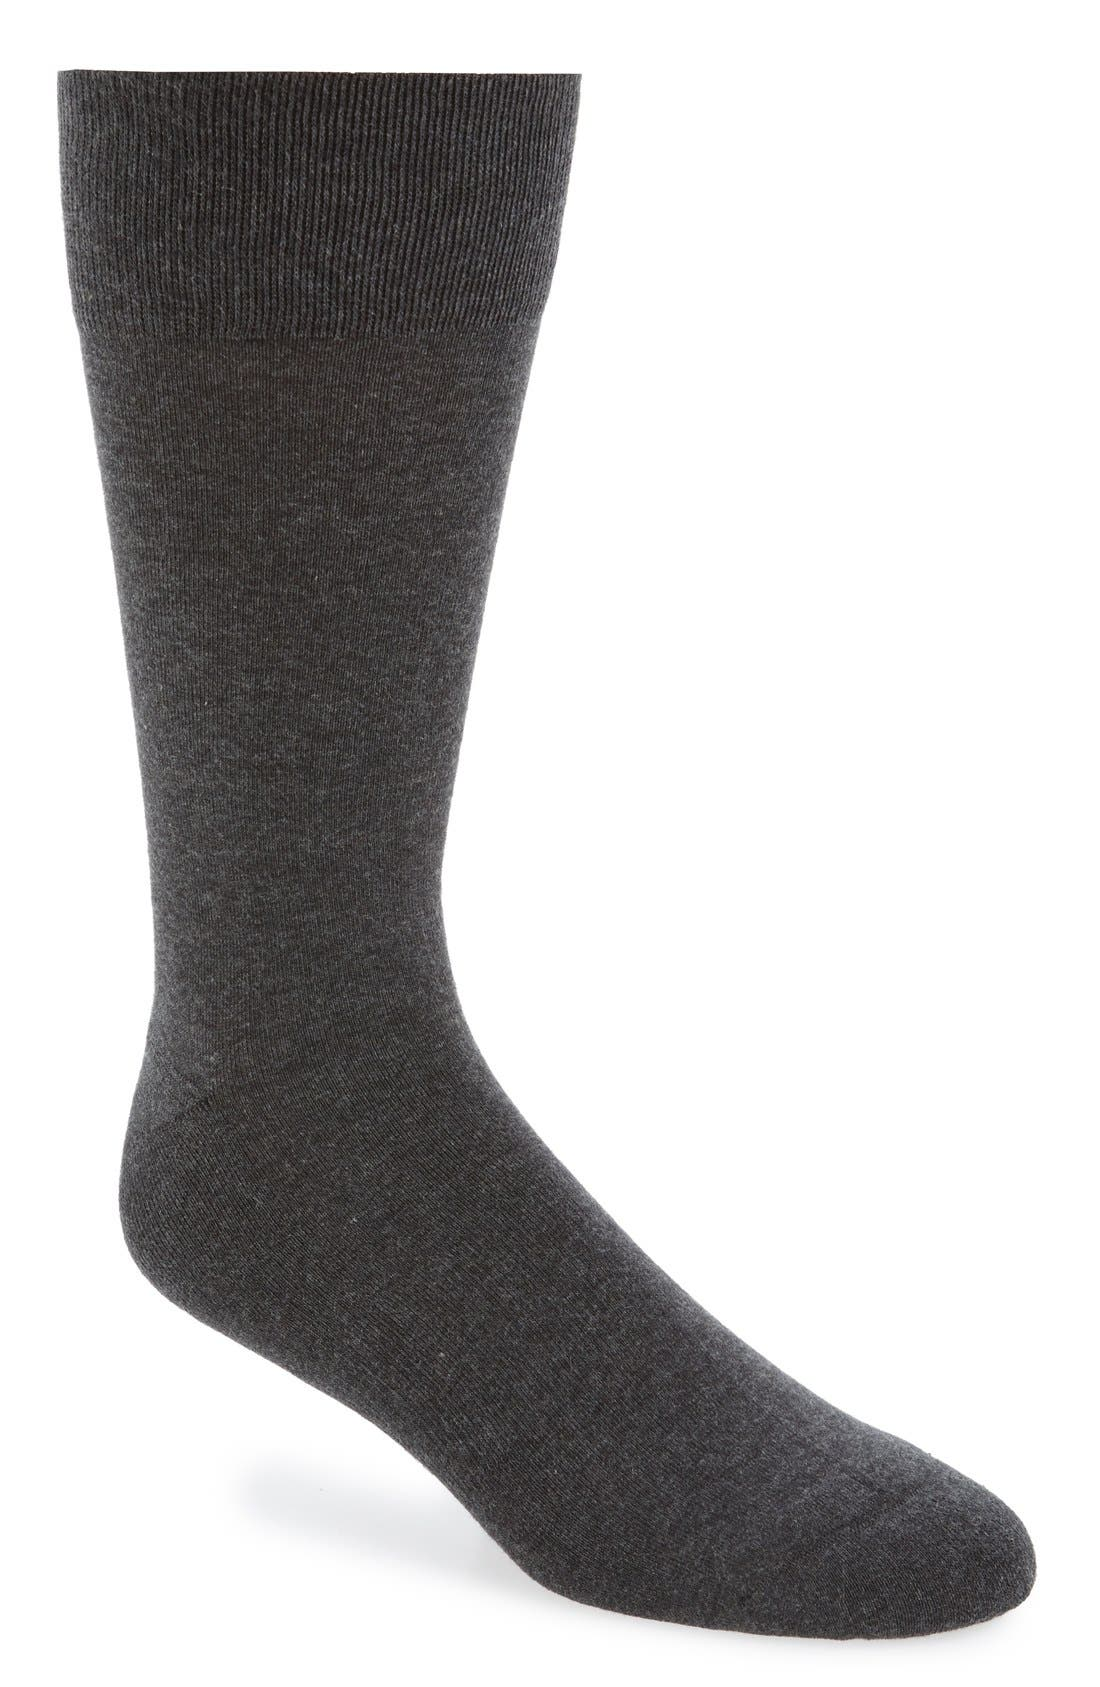 Cushion Foot Arch Support Socks,                         Main,                         color, CHARCOAL HEATHER